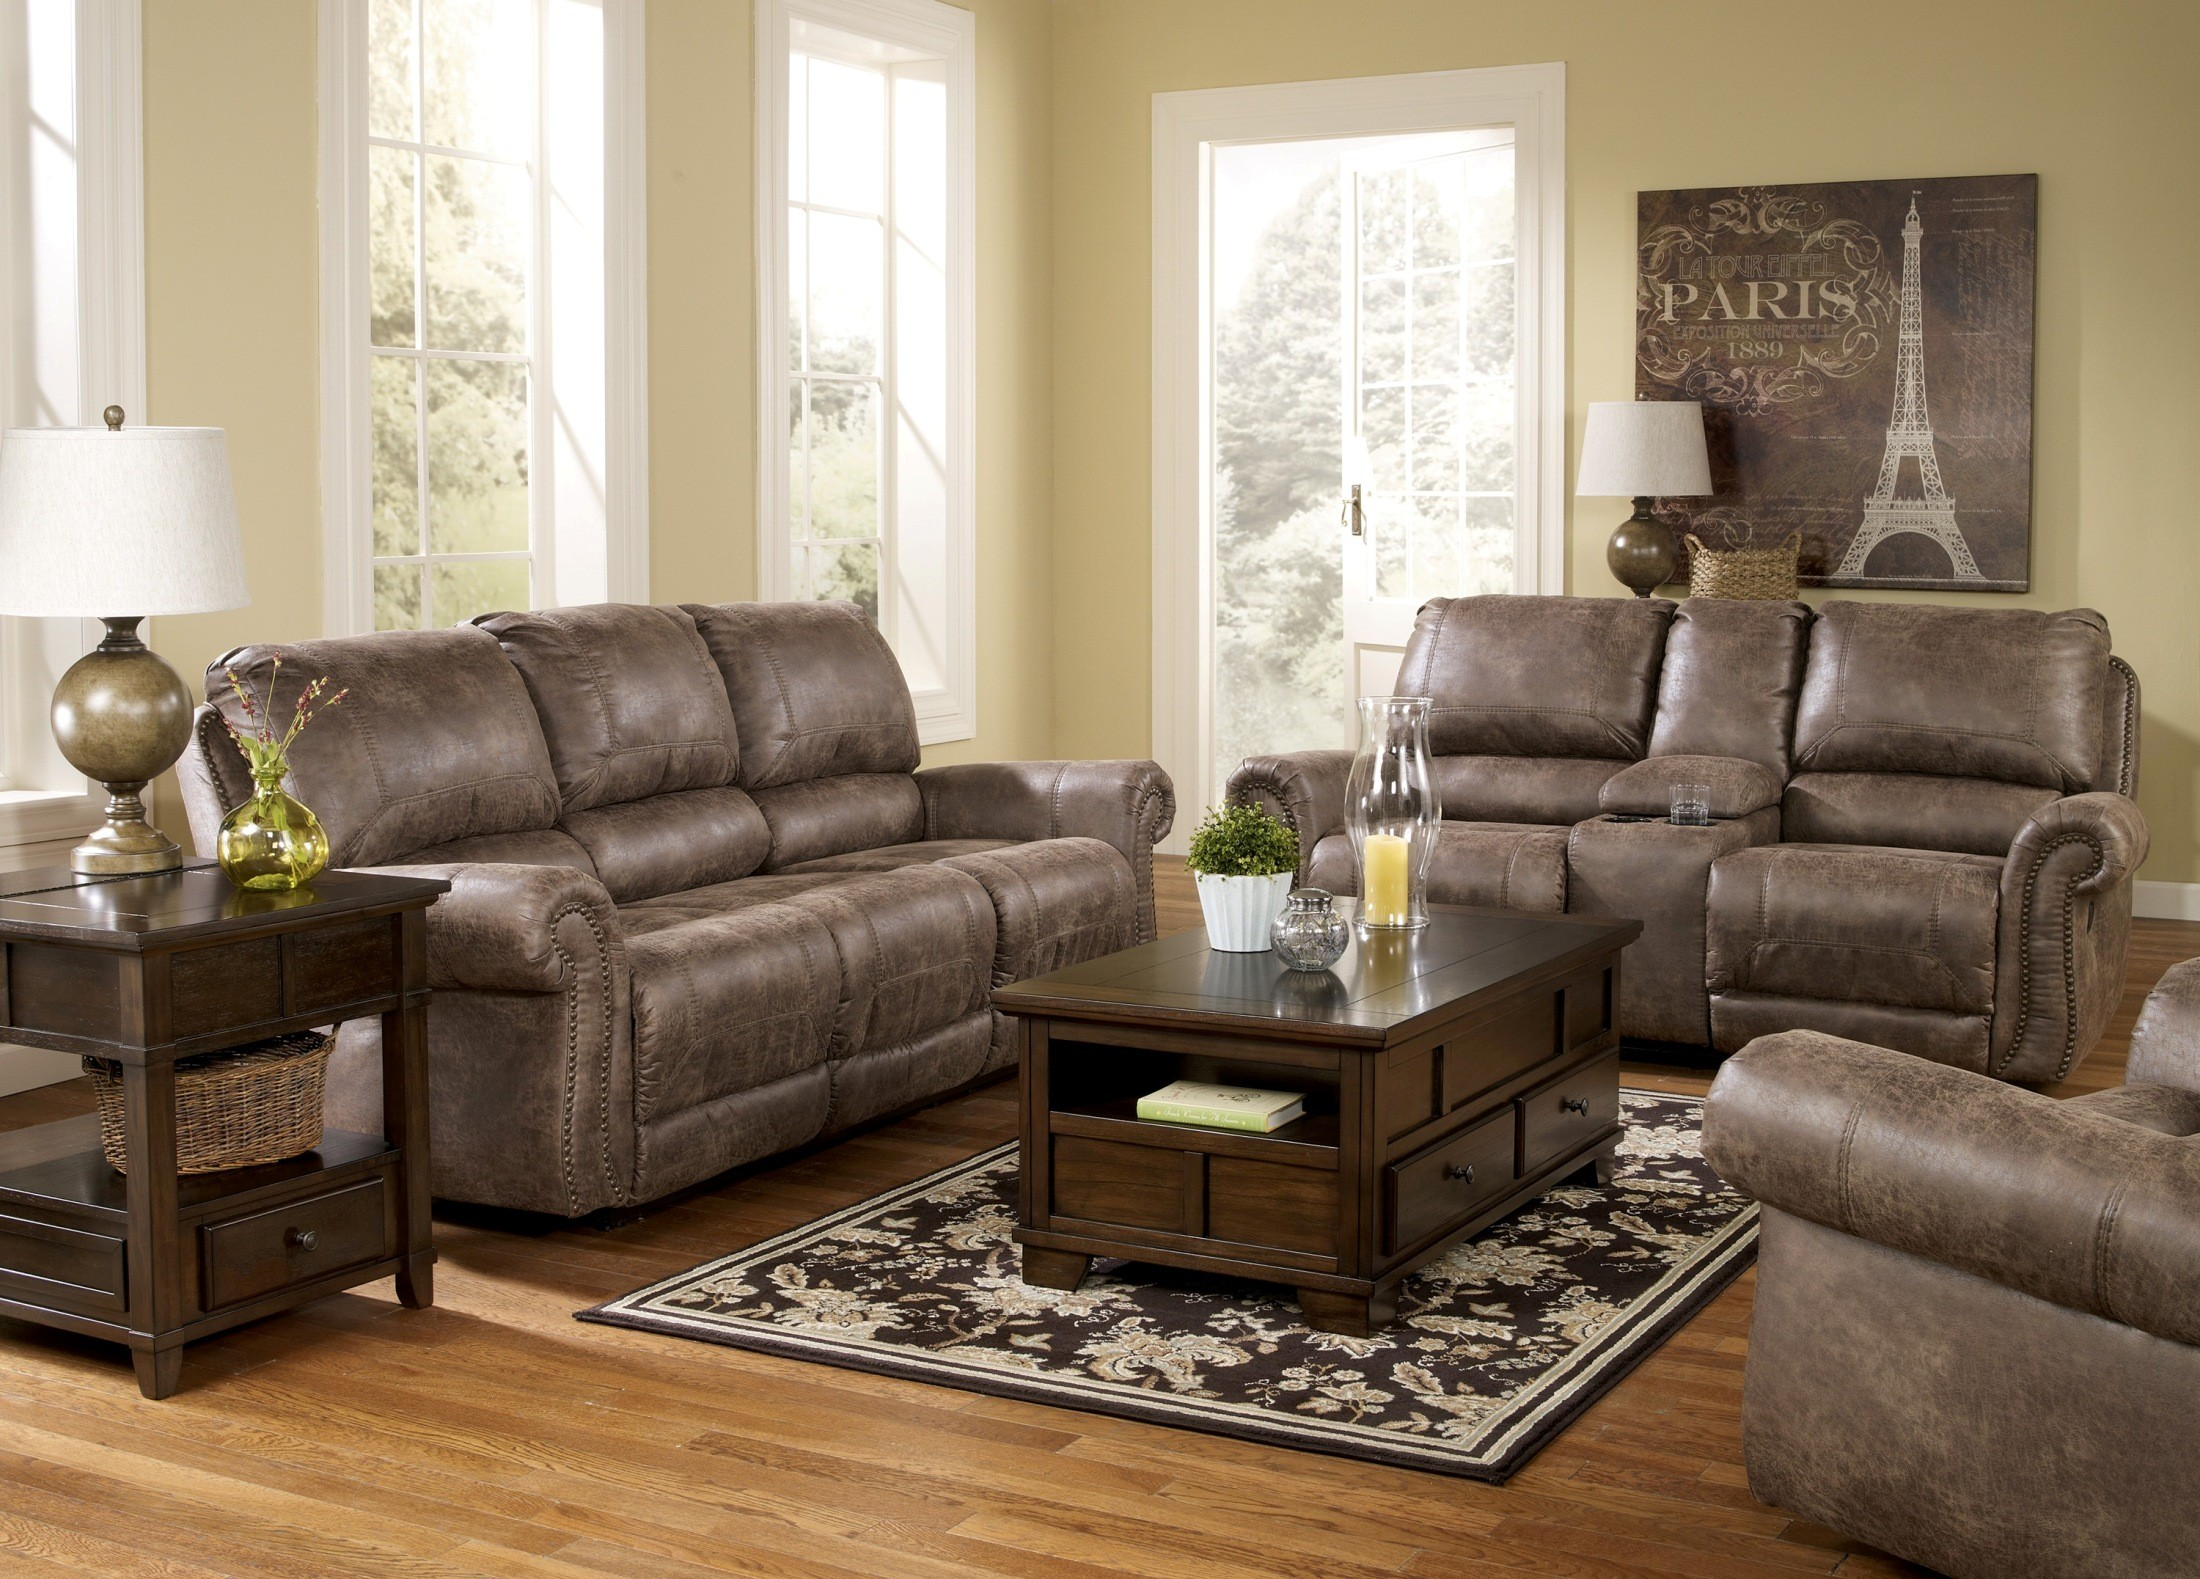 Oberson Gunsmoke Reclining Living Room Set From Ashley